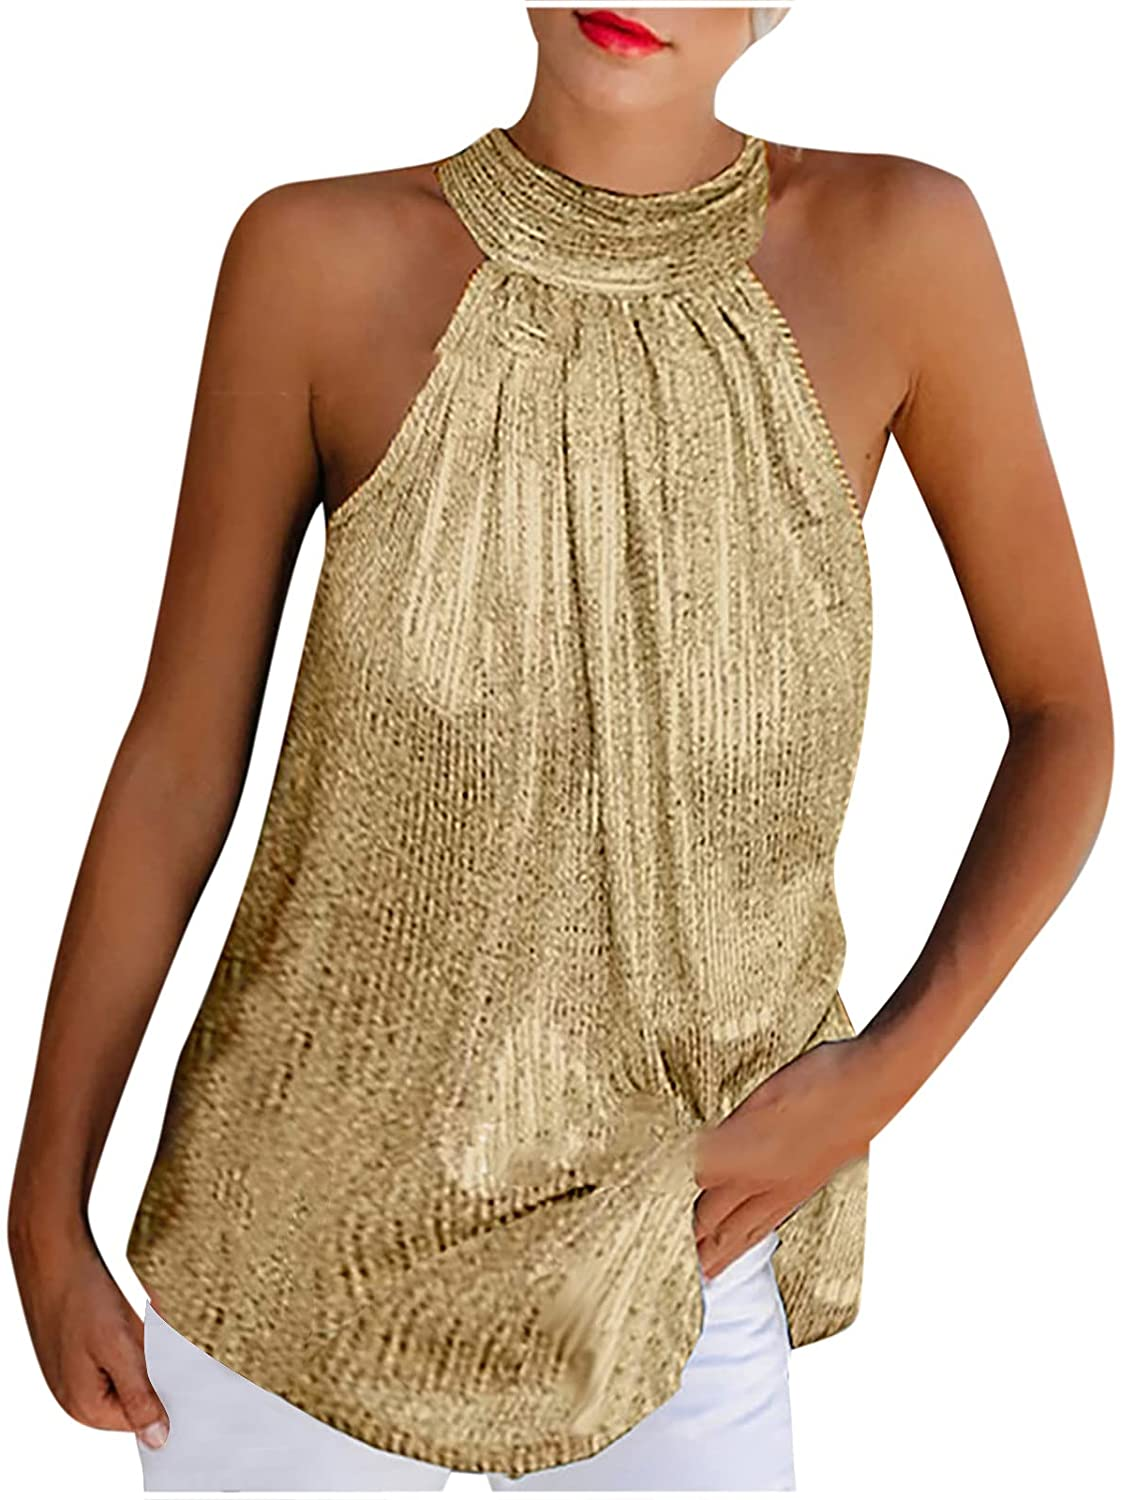 Womens Summer Tops Women Summer Solid Sequined Sleeveless Casual Halter Top Tank Shirt Vest Blouses for Women Fashion